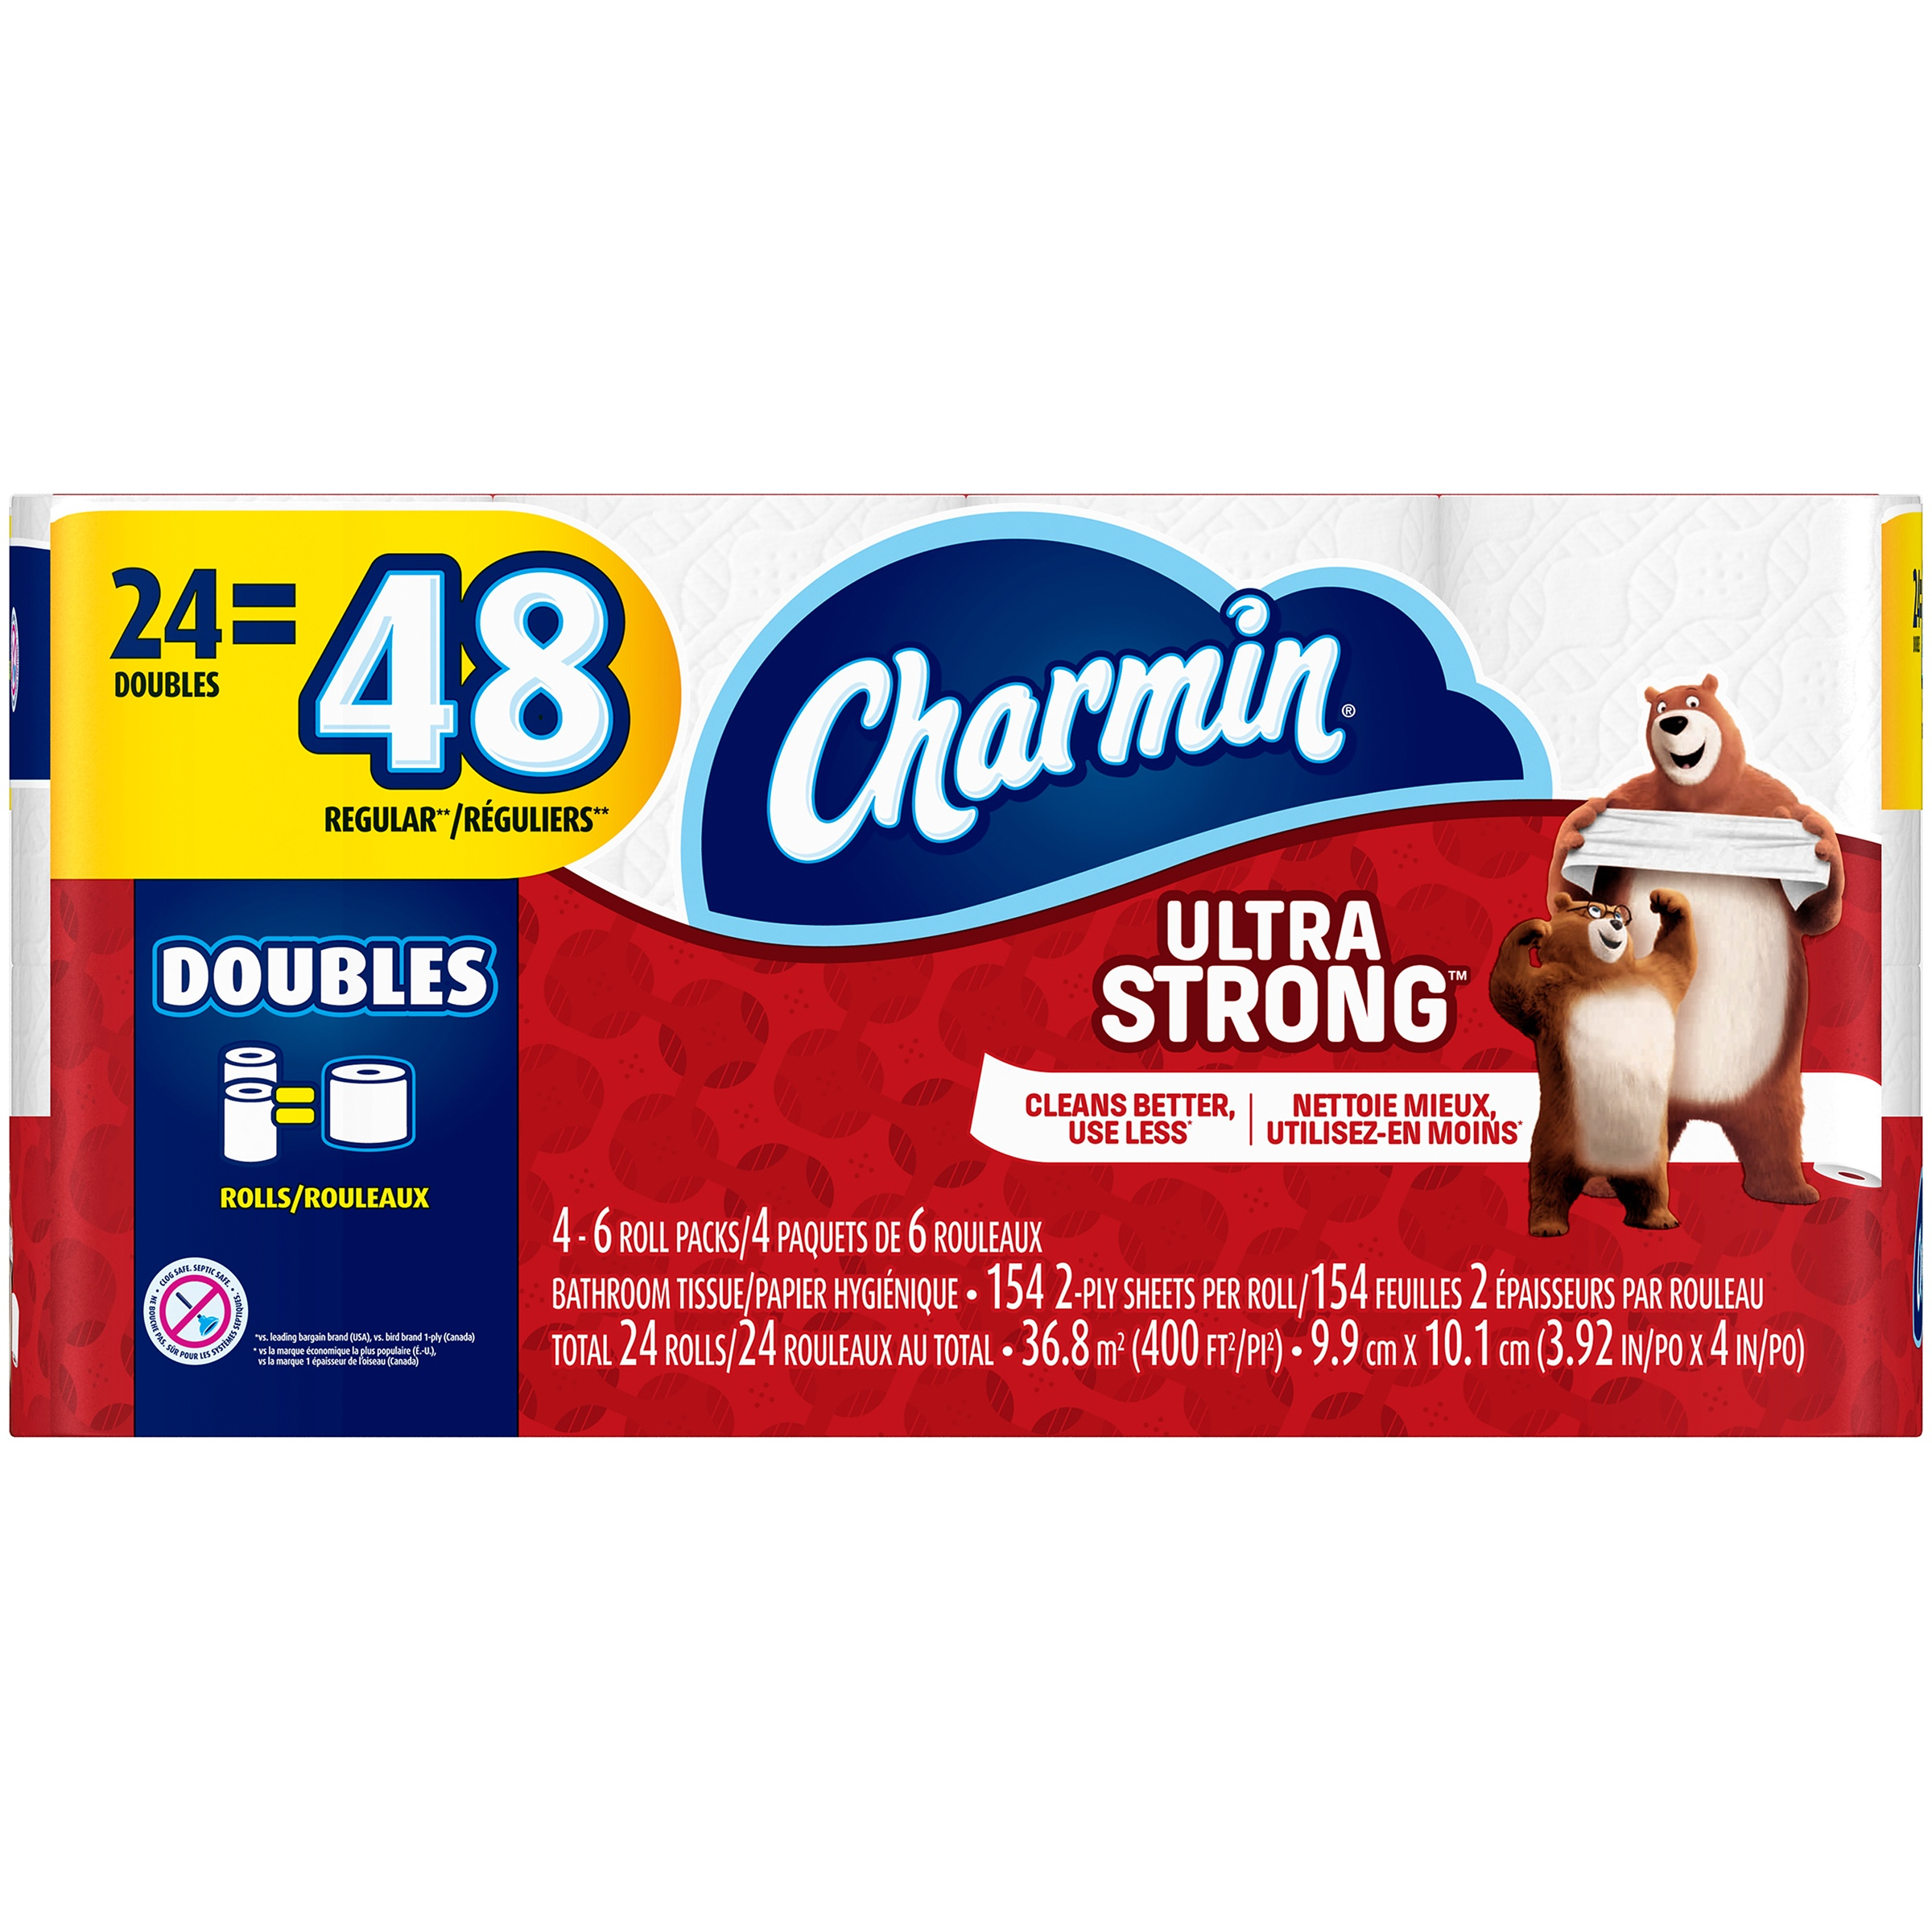 Charmin Ultra Strong Toilet Paper, Double Rolls, 24 Ct